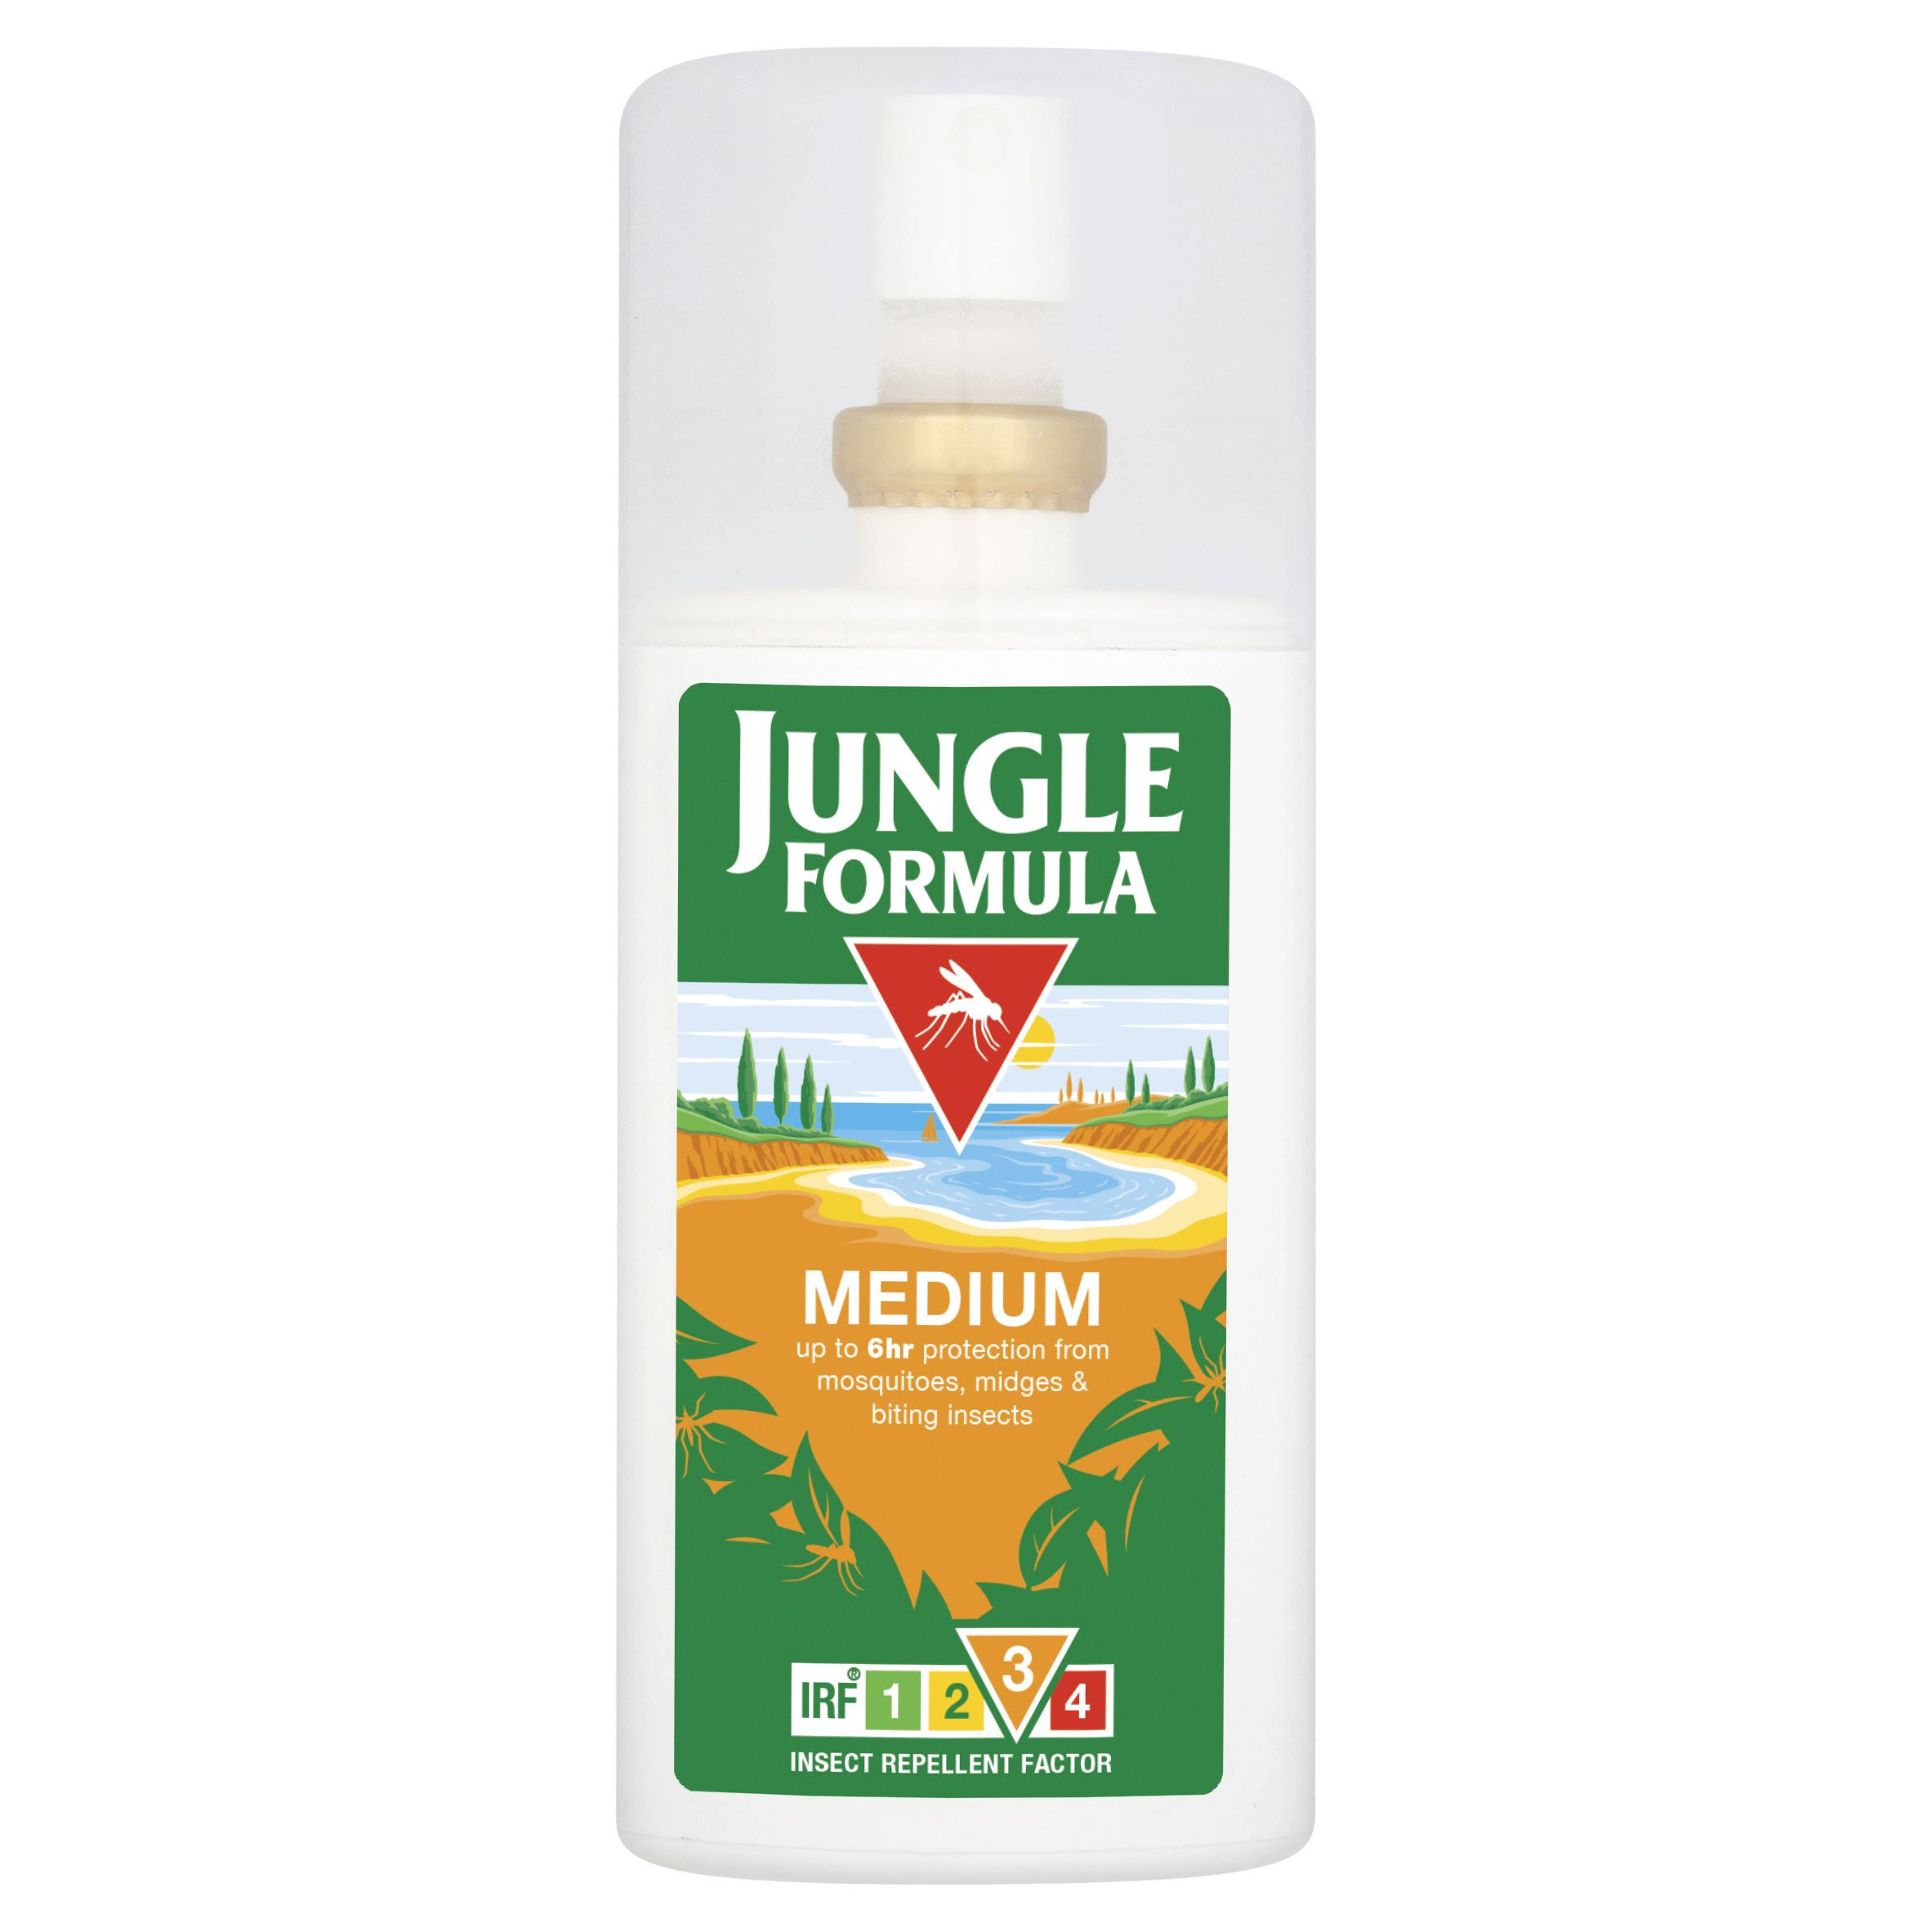 Jungle Formula Medium Insect Repellent Pump Spray - 90ml